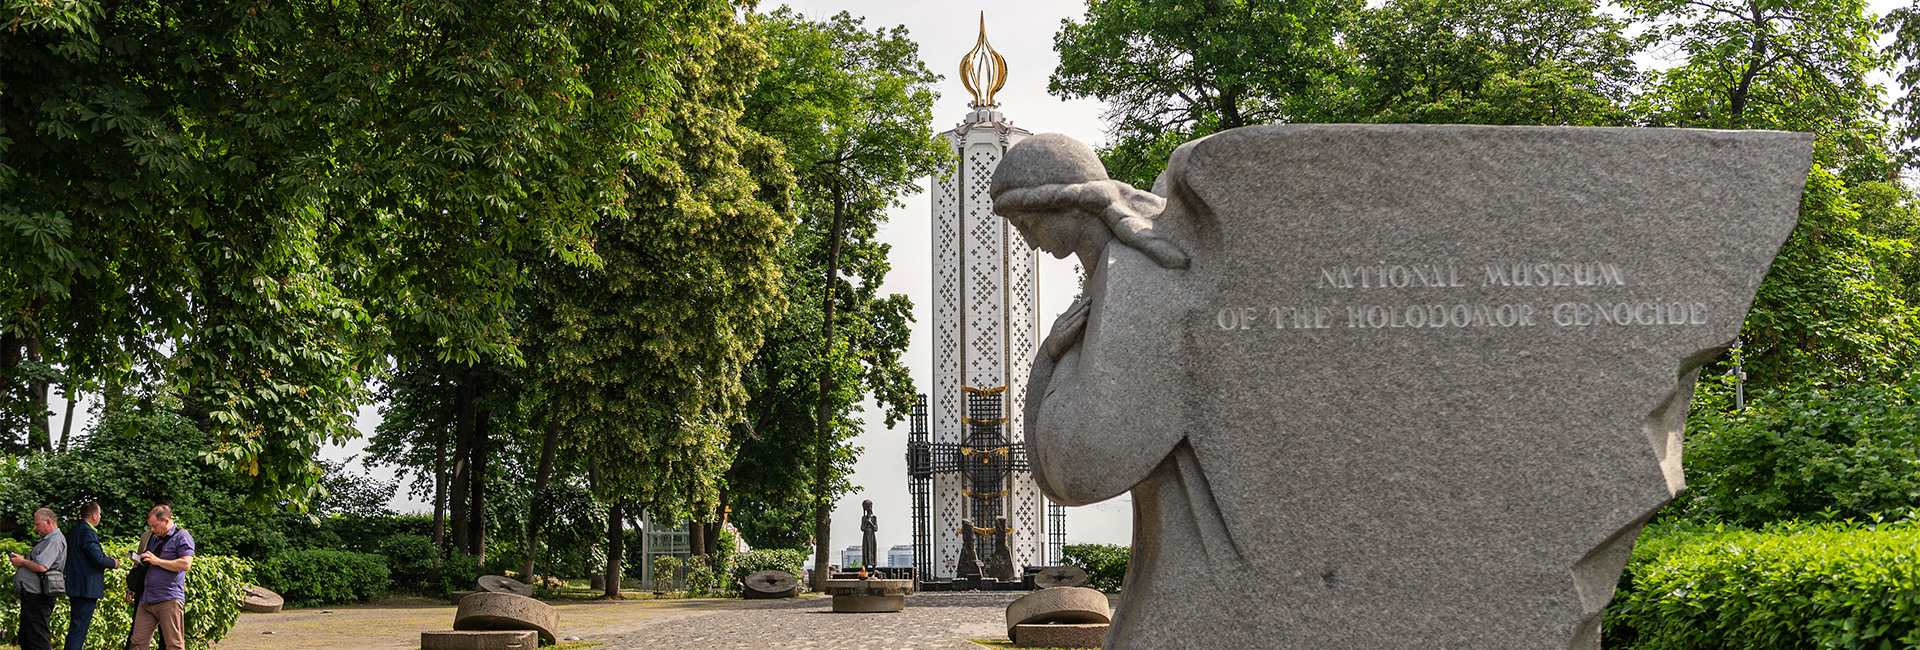 Memorial to Holodomor Victims in June